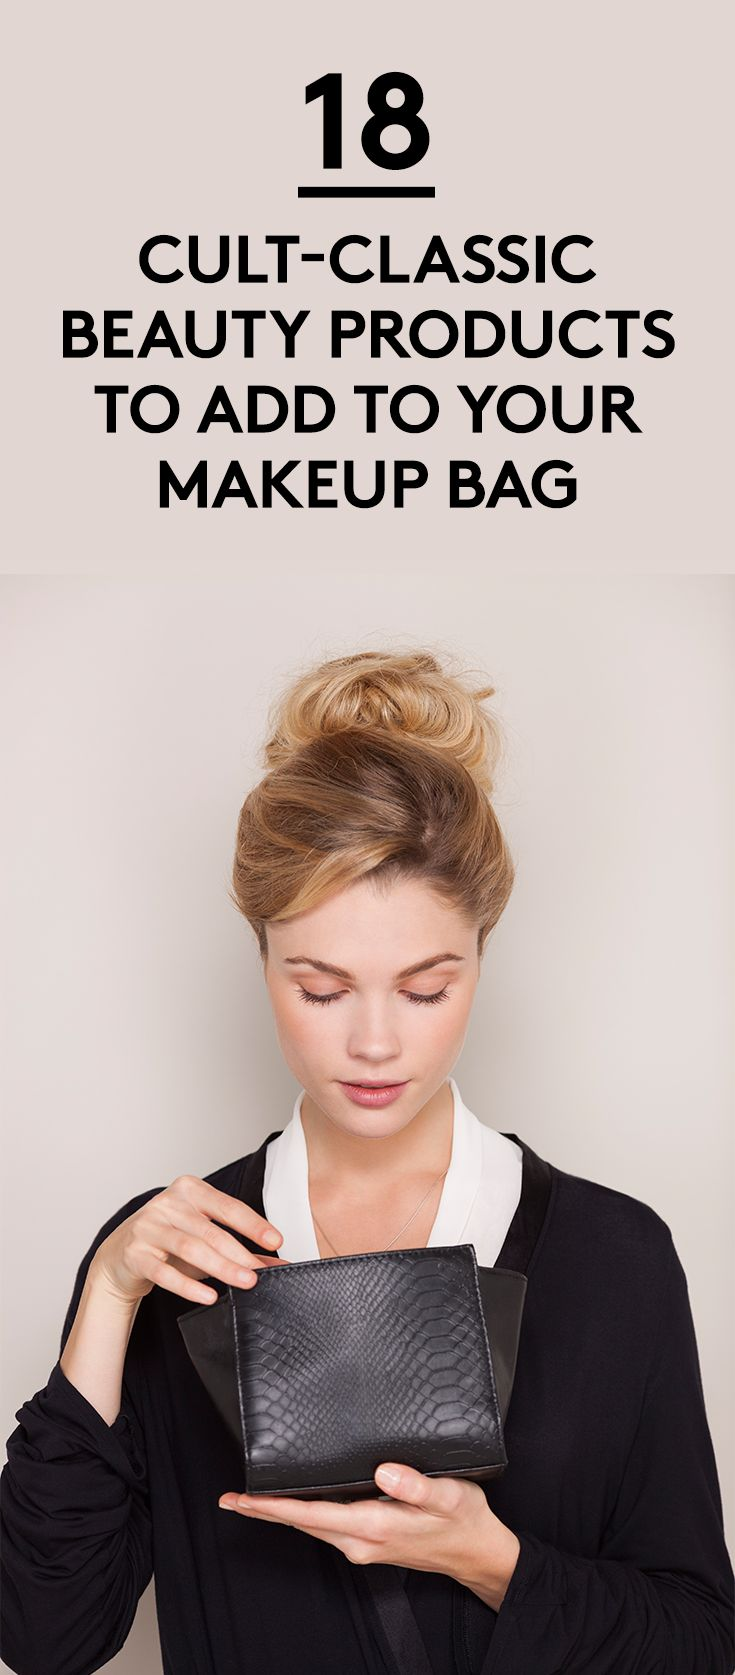 18 Cult-Classic Beauty Products to Add to Your Makeup Bag | Yes, new beauty prod...